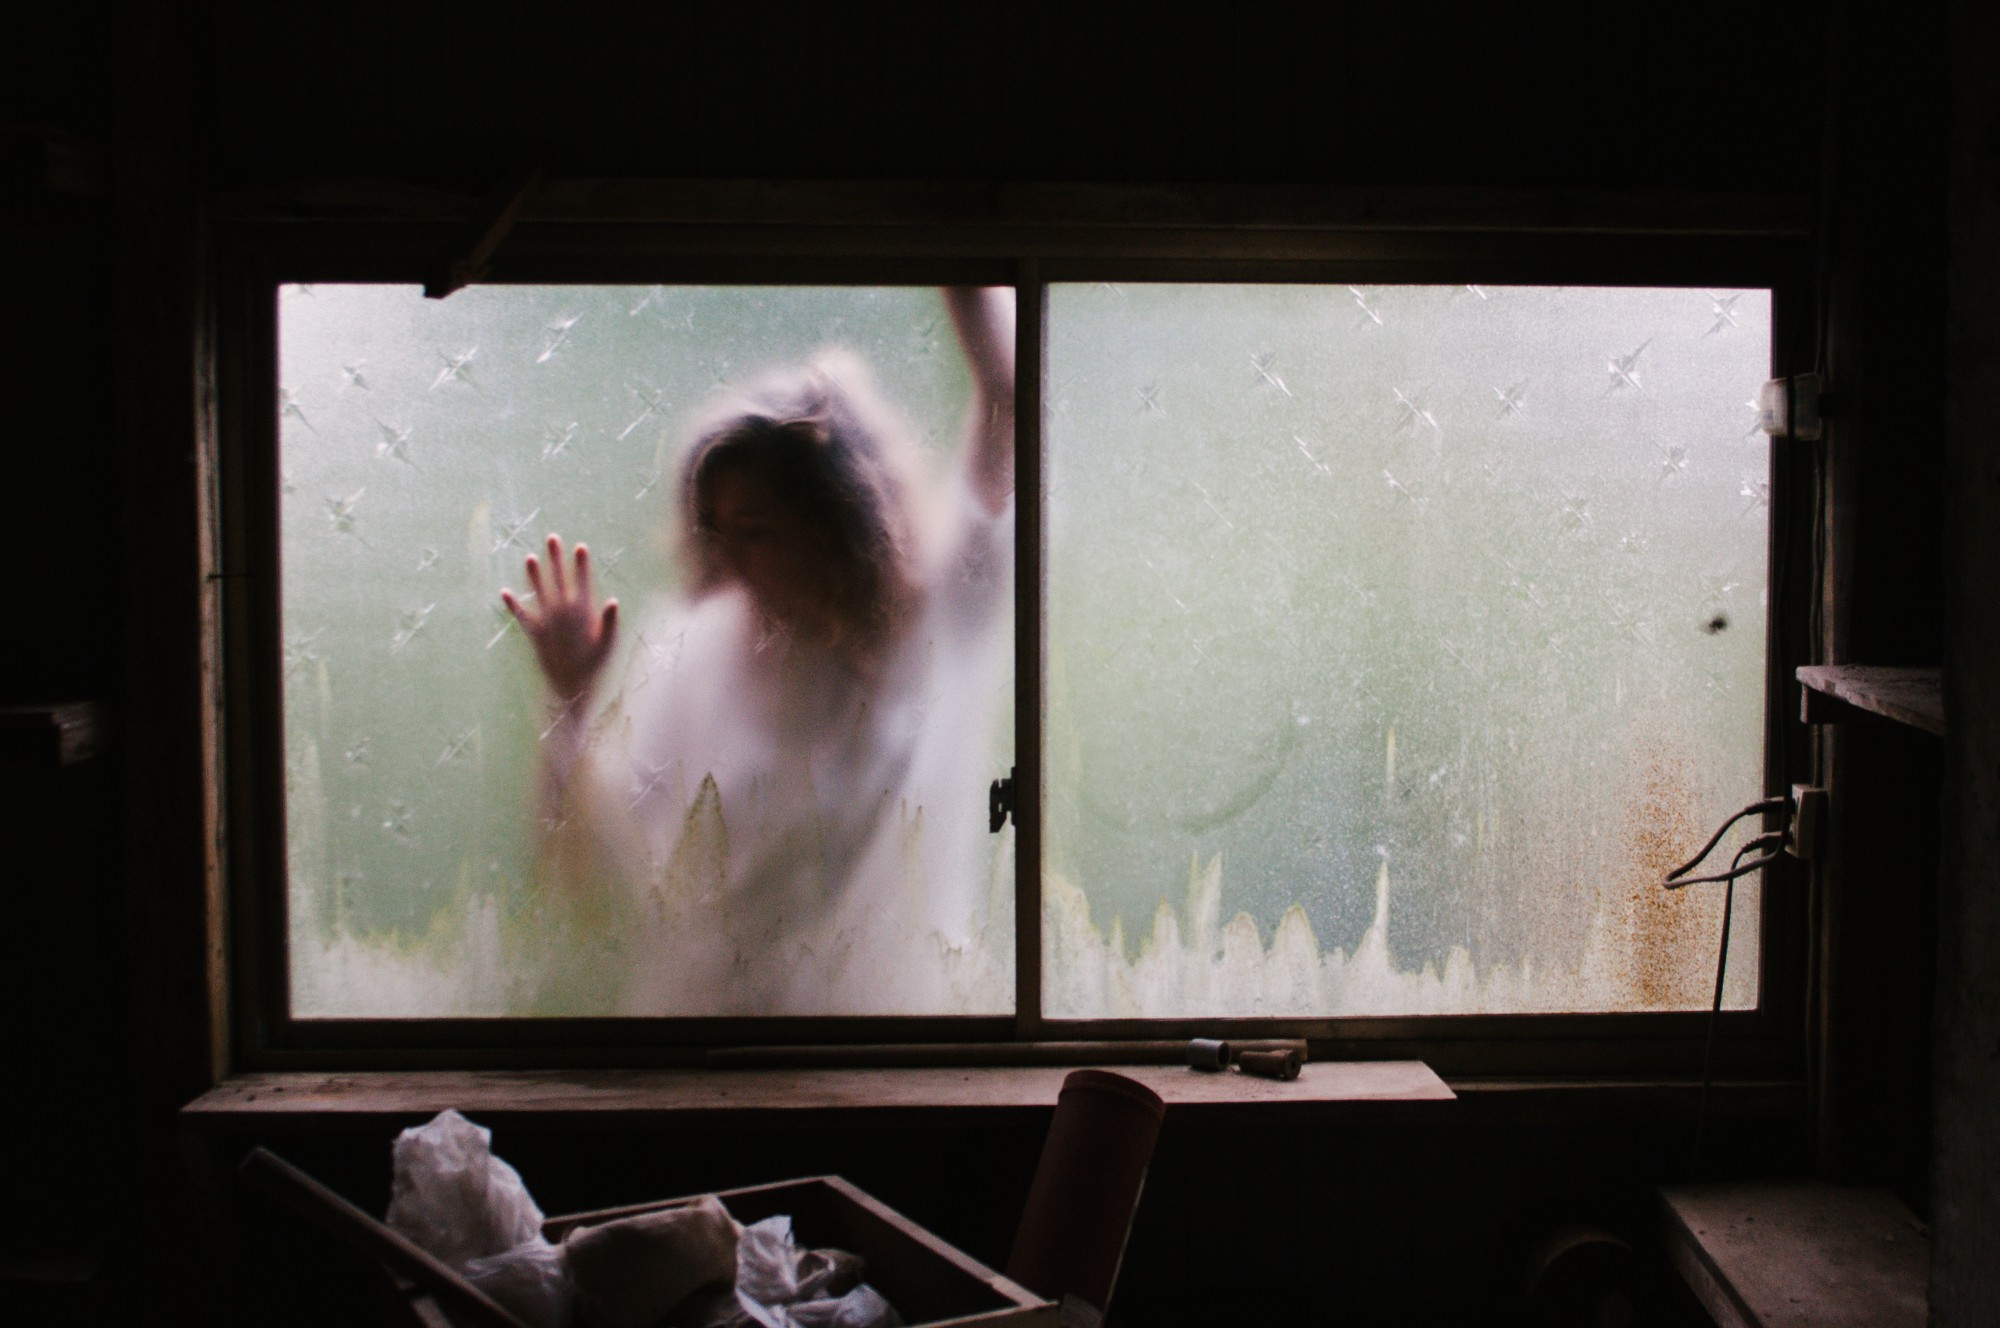 Blurred image of a woman with her hands placed against a window. Spooky, creepy, trapped feeling.